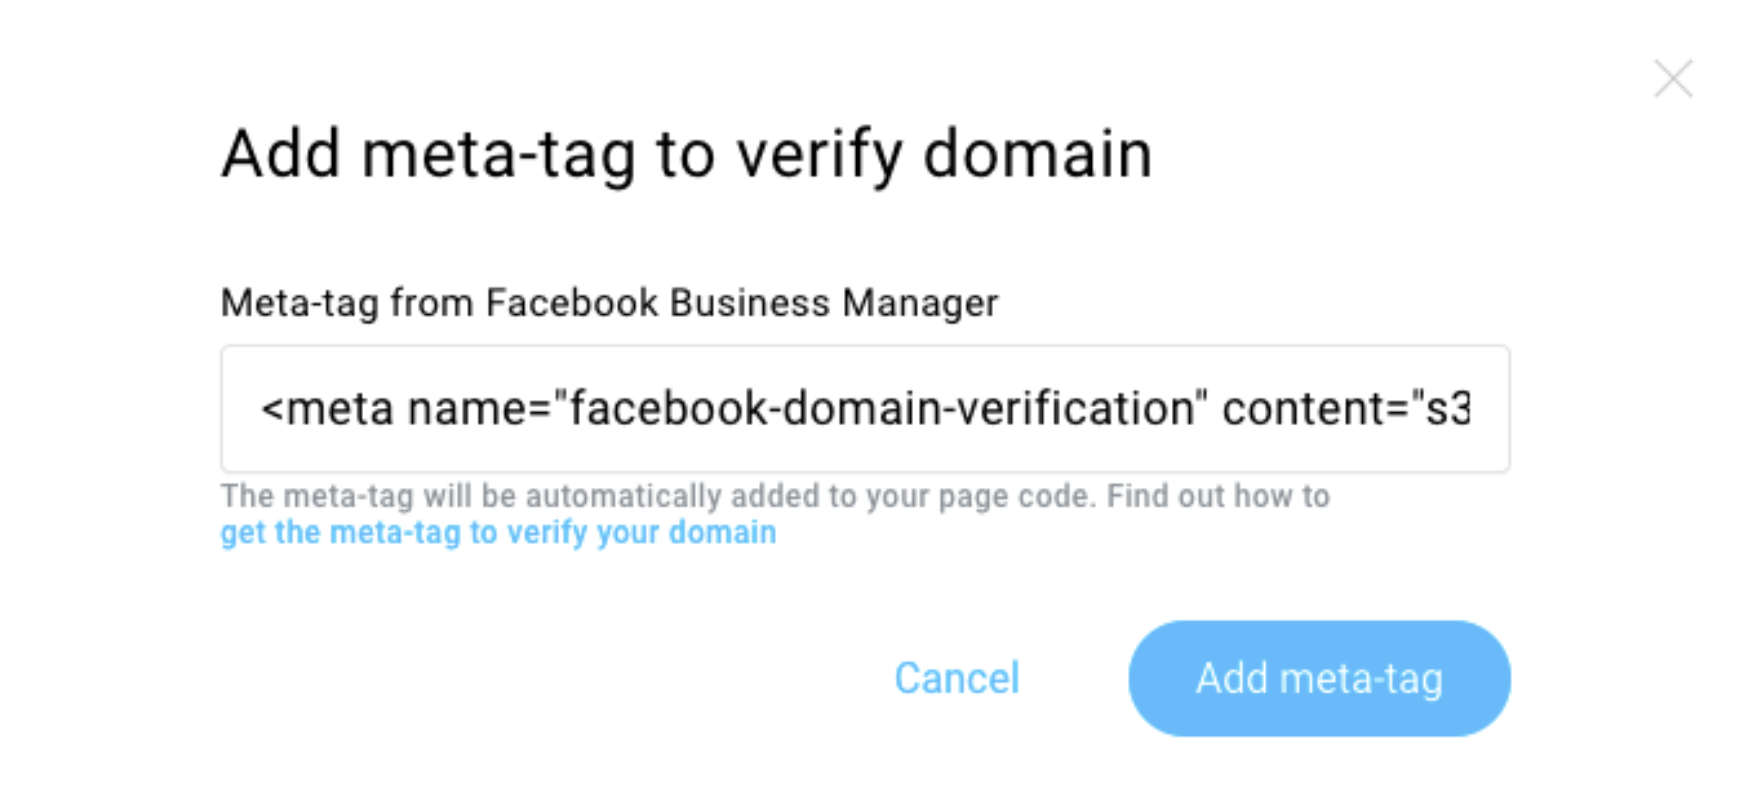 Add meta tag to verify your domain window shown.